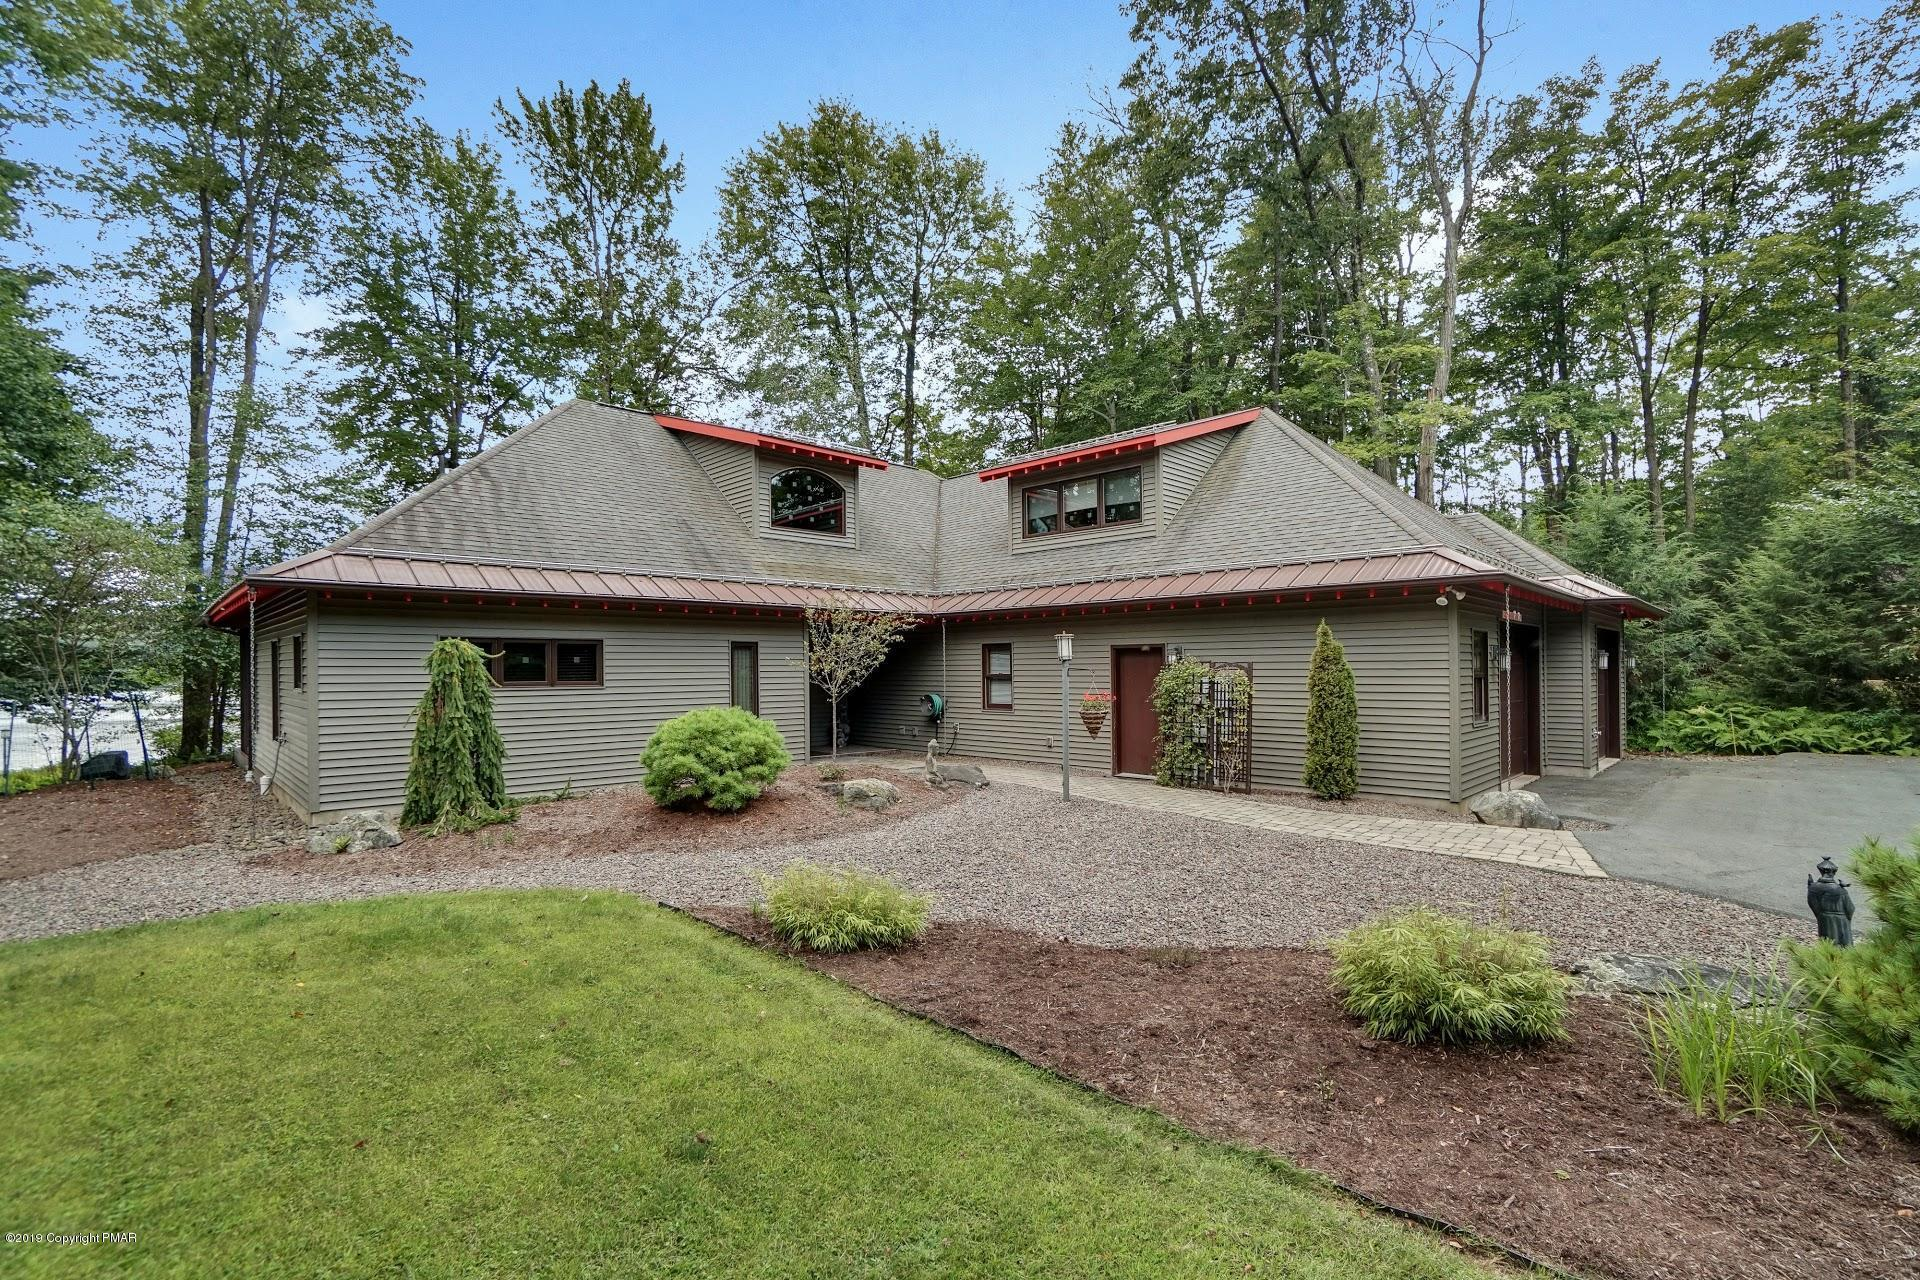 162 Lake In The Clouds Rd, Canadensis, PA 18325